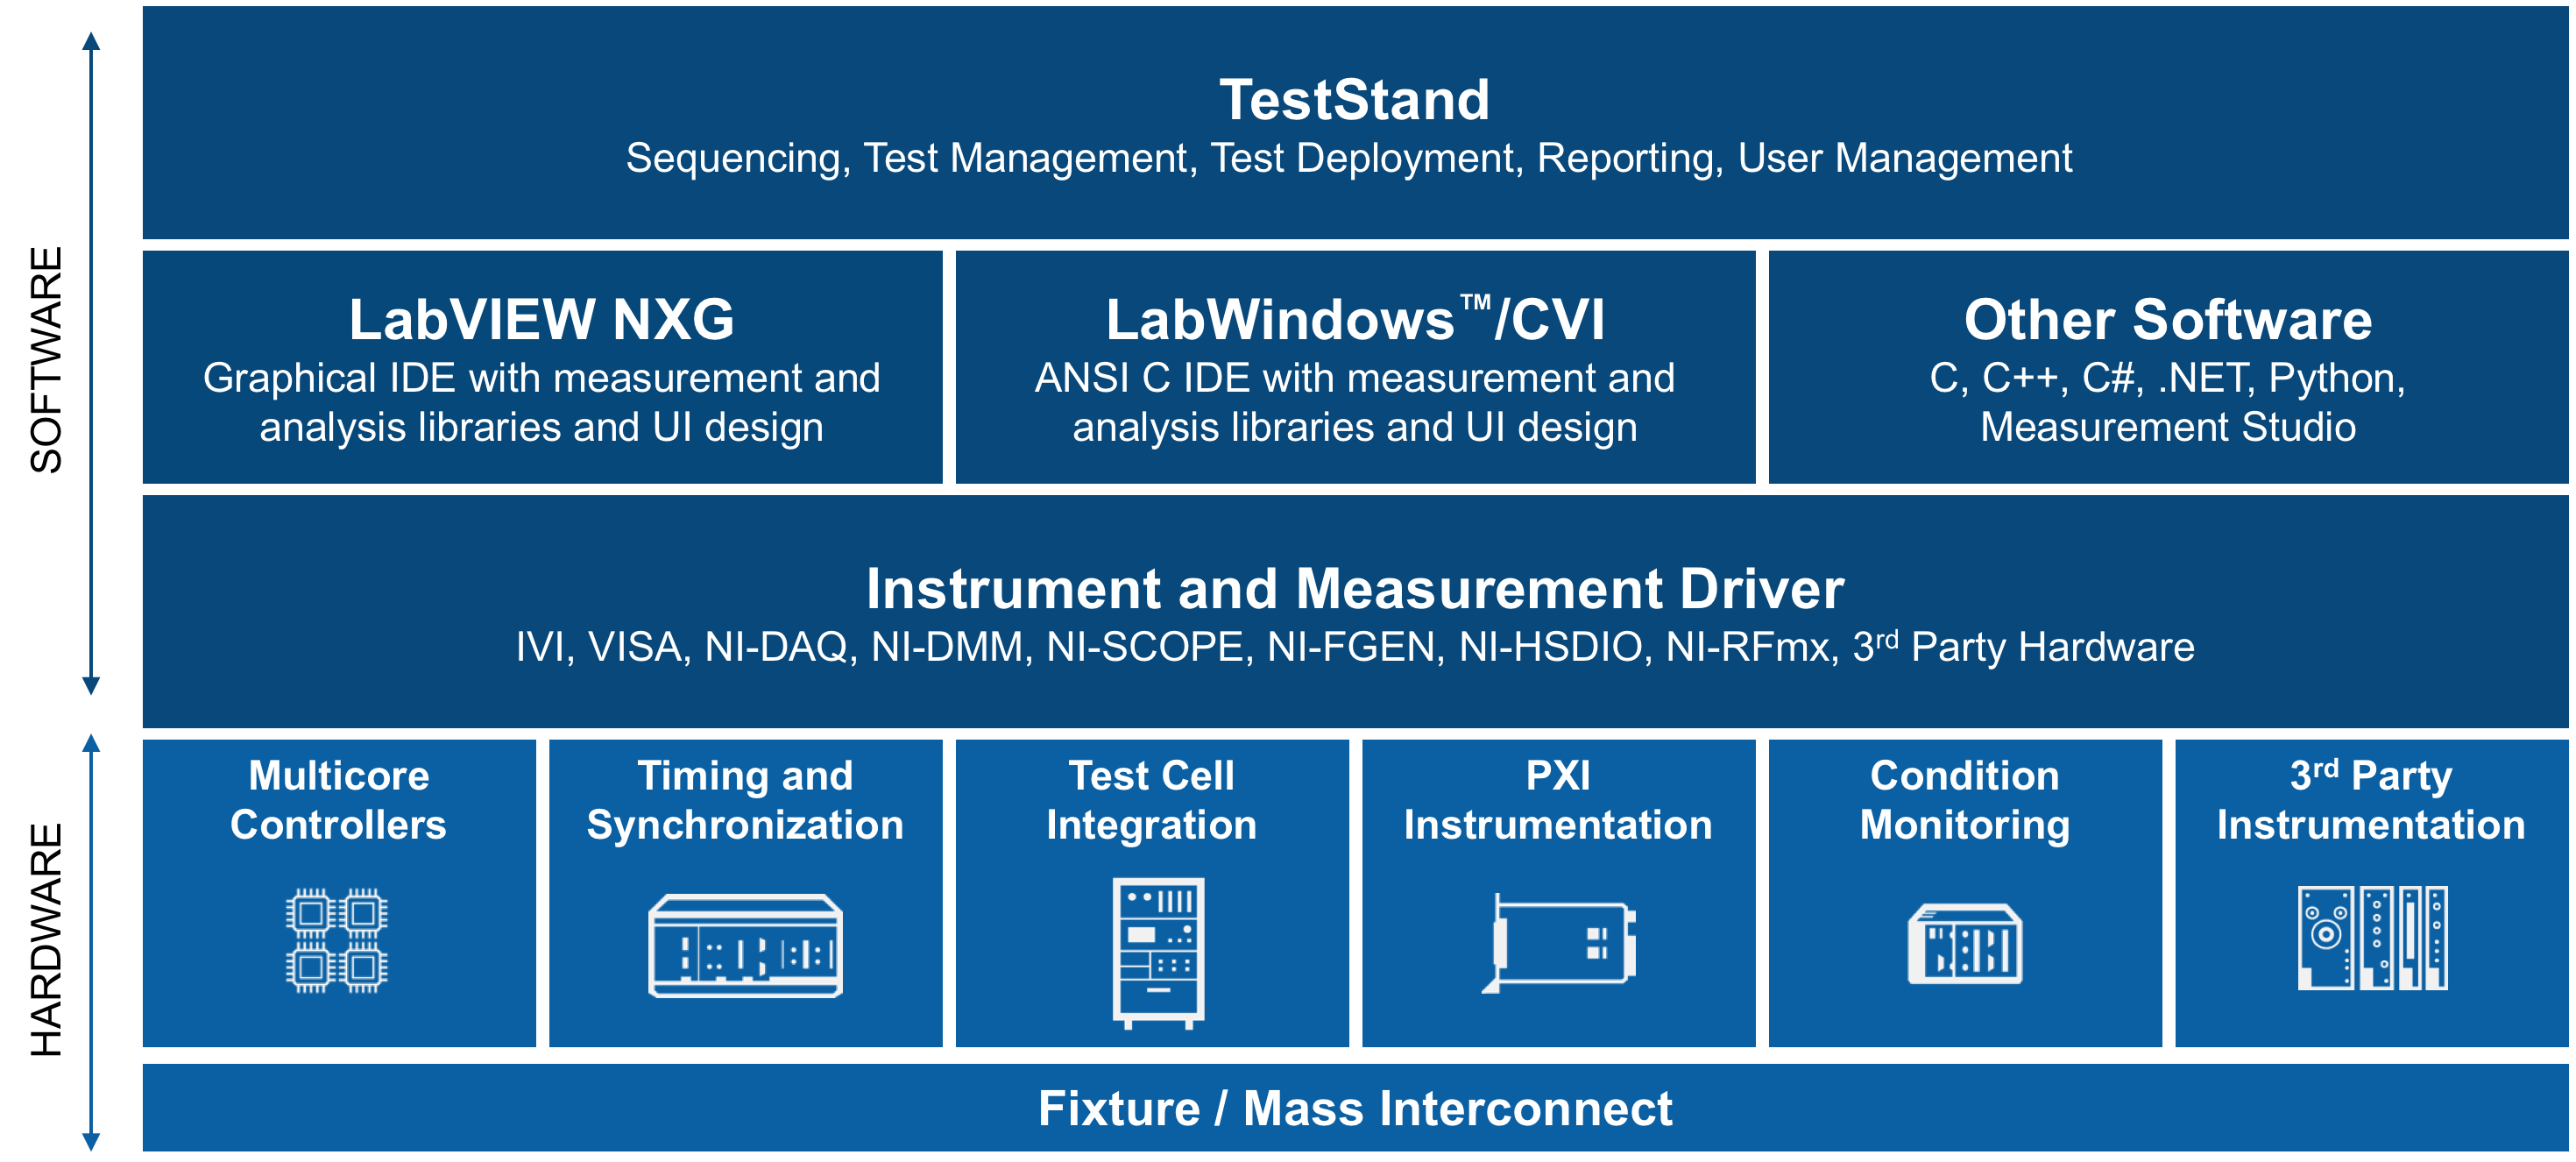 Automate Power Generation From A Keysight E363x Supply Using Selecting And Rs 232 Interface Parts For Your Voltages Test Management Software Example Teststand Is At The Top Of Properly Architected System